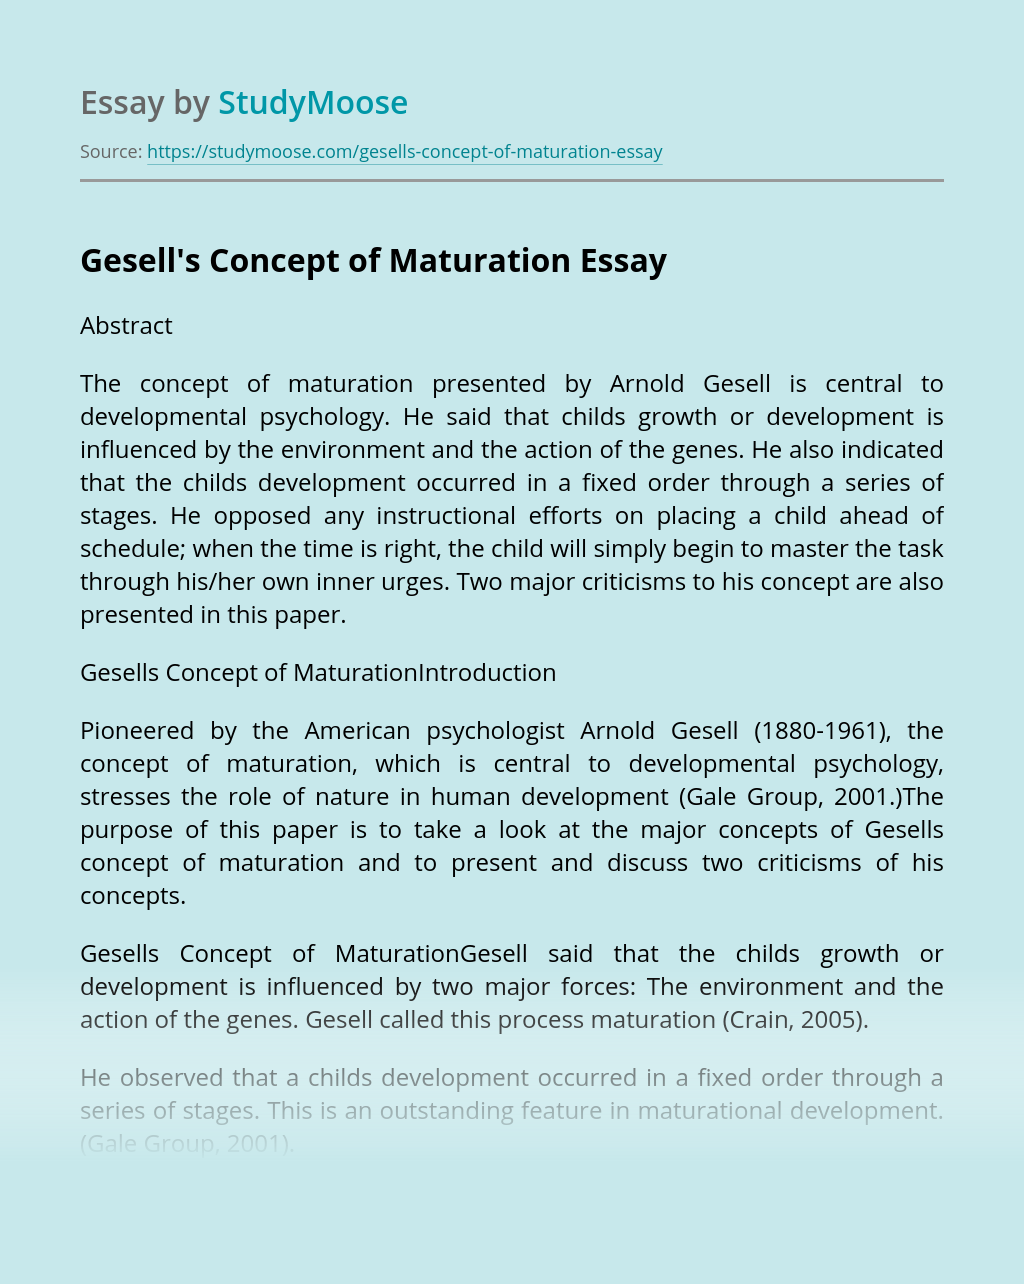 Gesell's Concept of Maturation